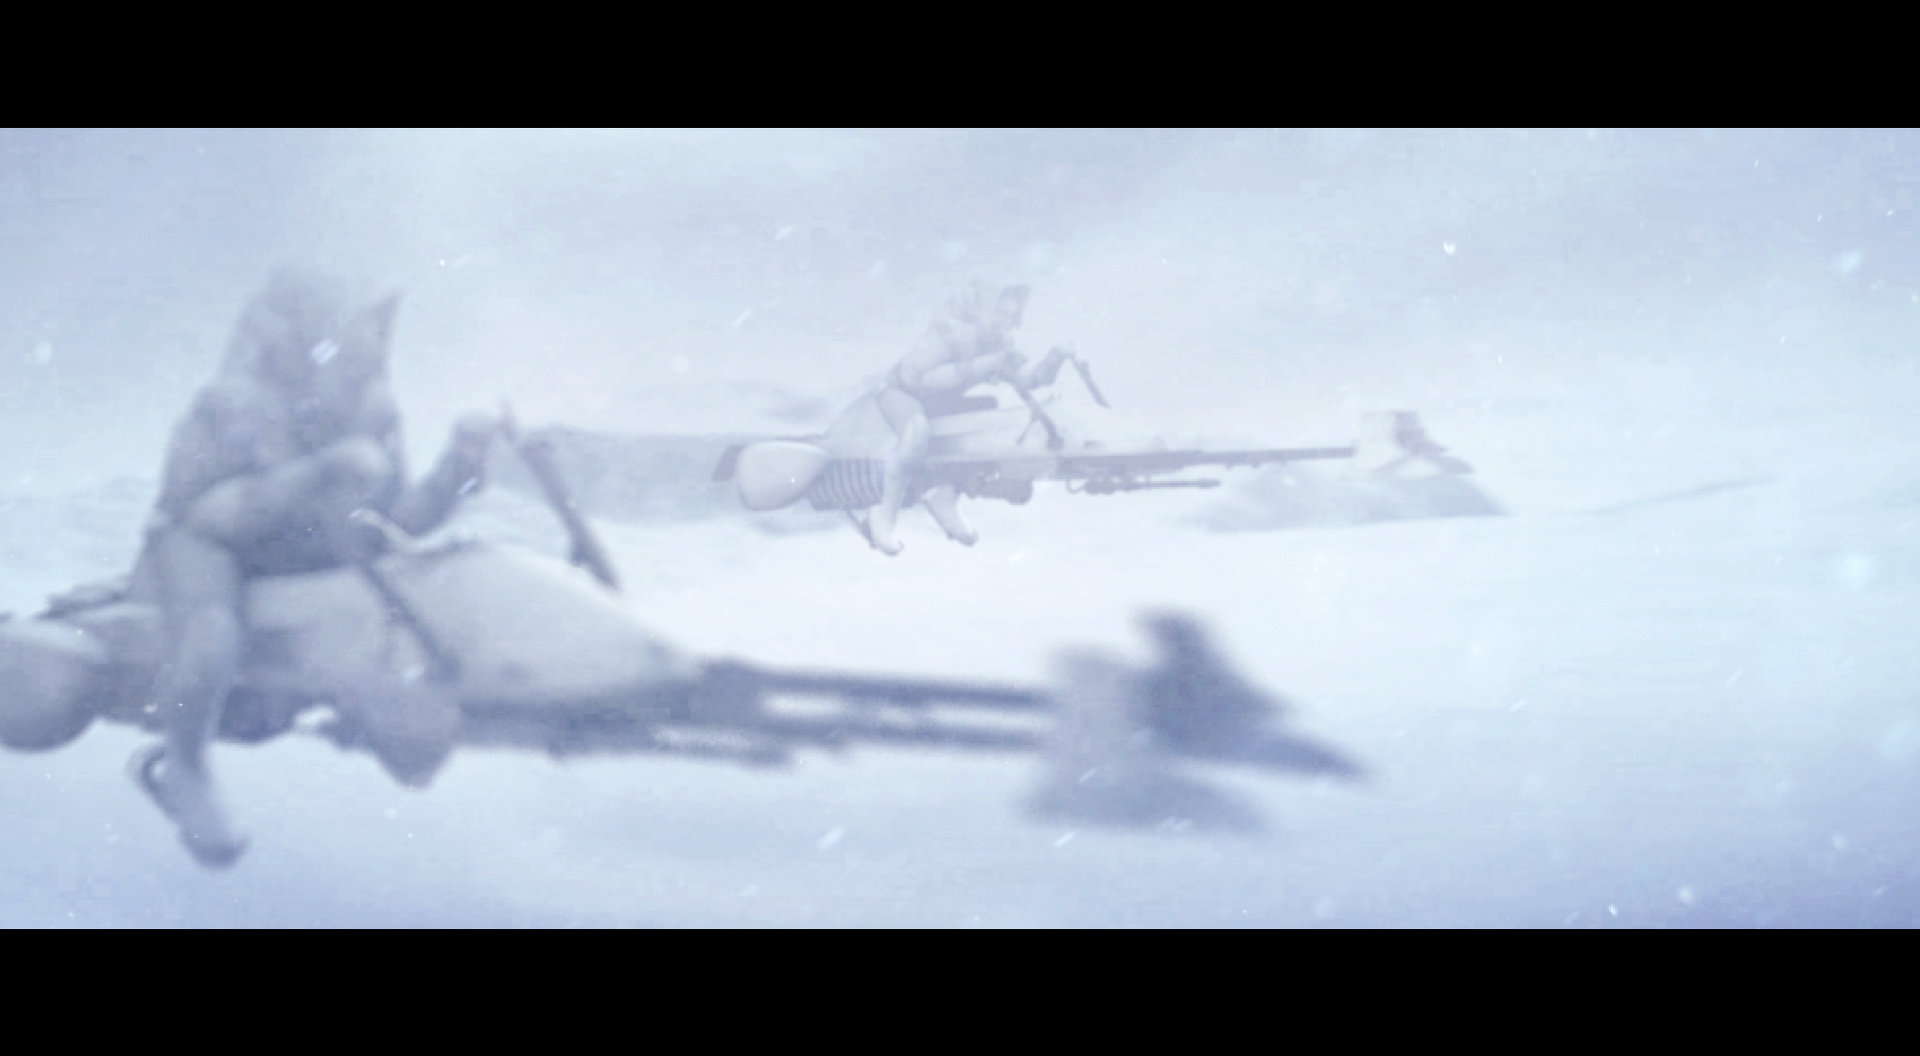 Paul massey hoth speederbikes test 02